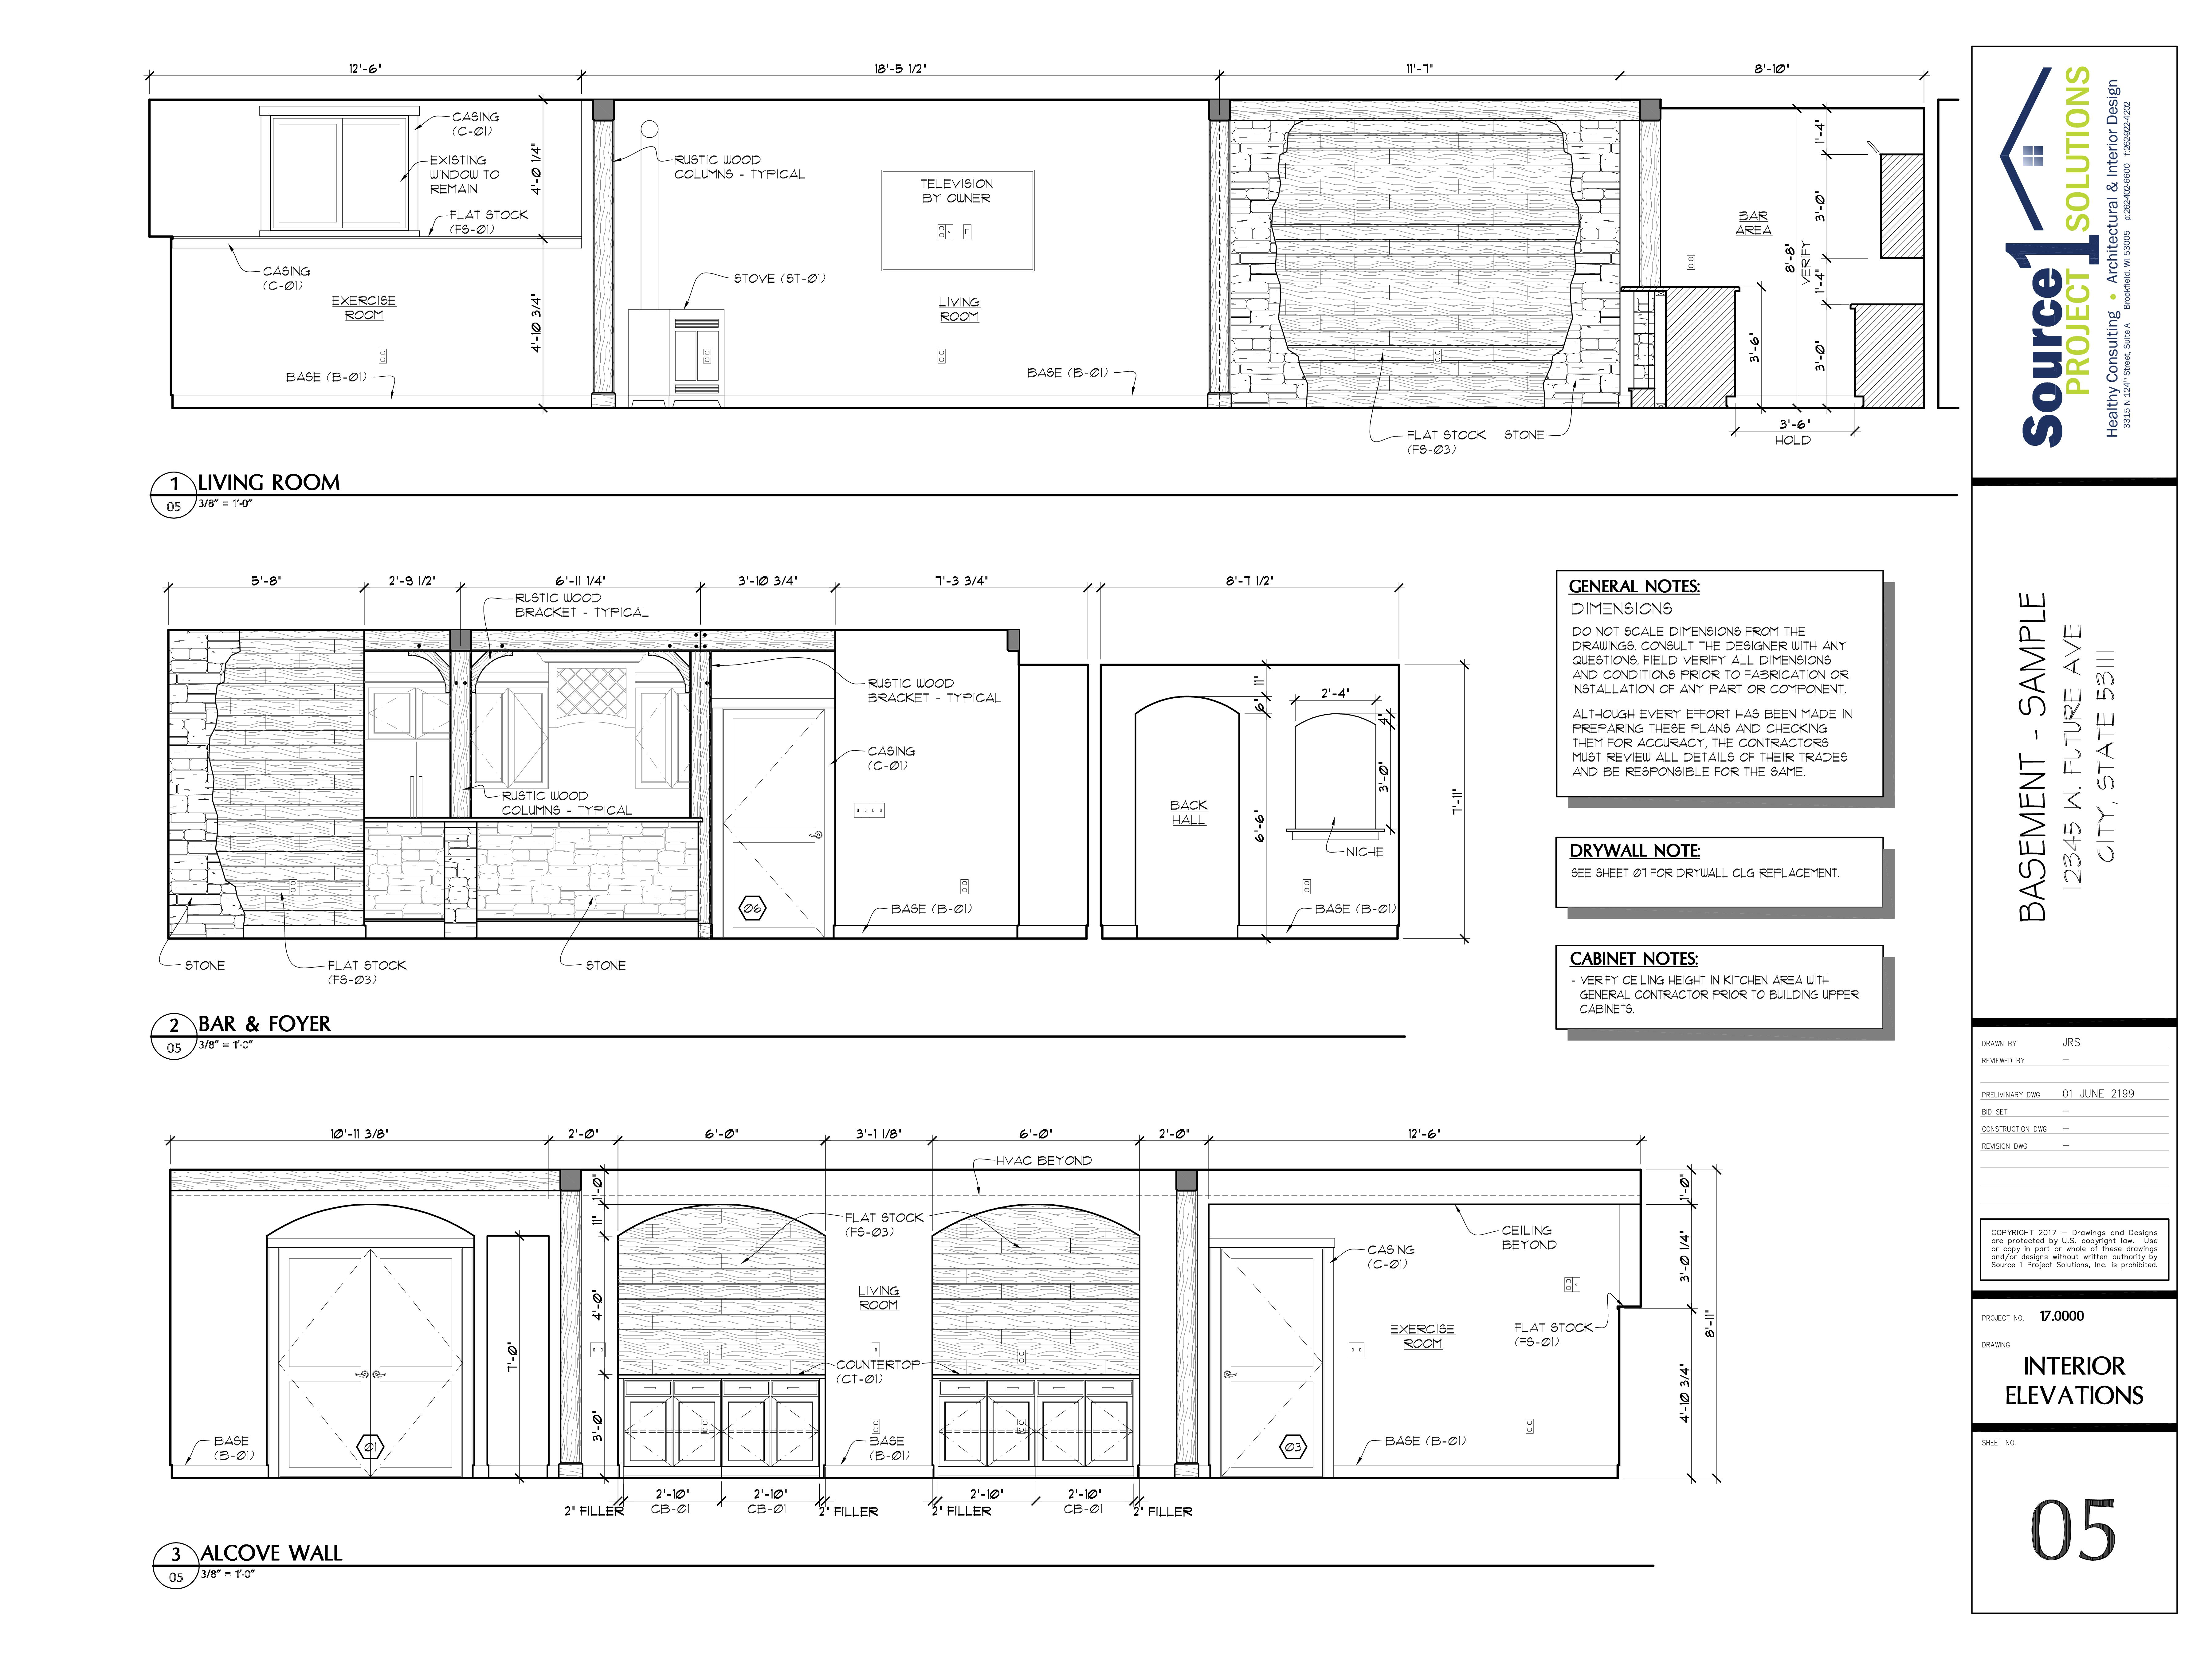 Source 1 Basement Plan - SAMPLE 01_5